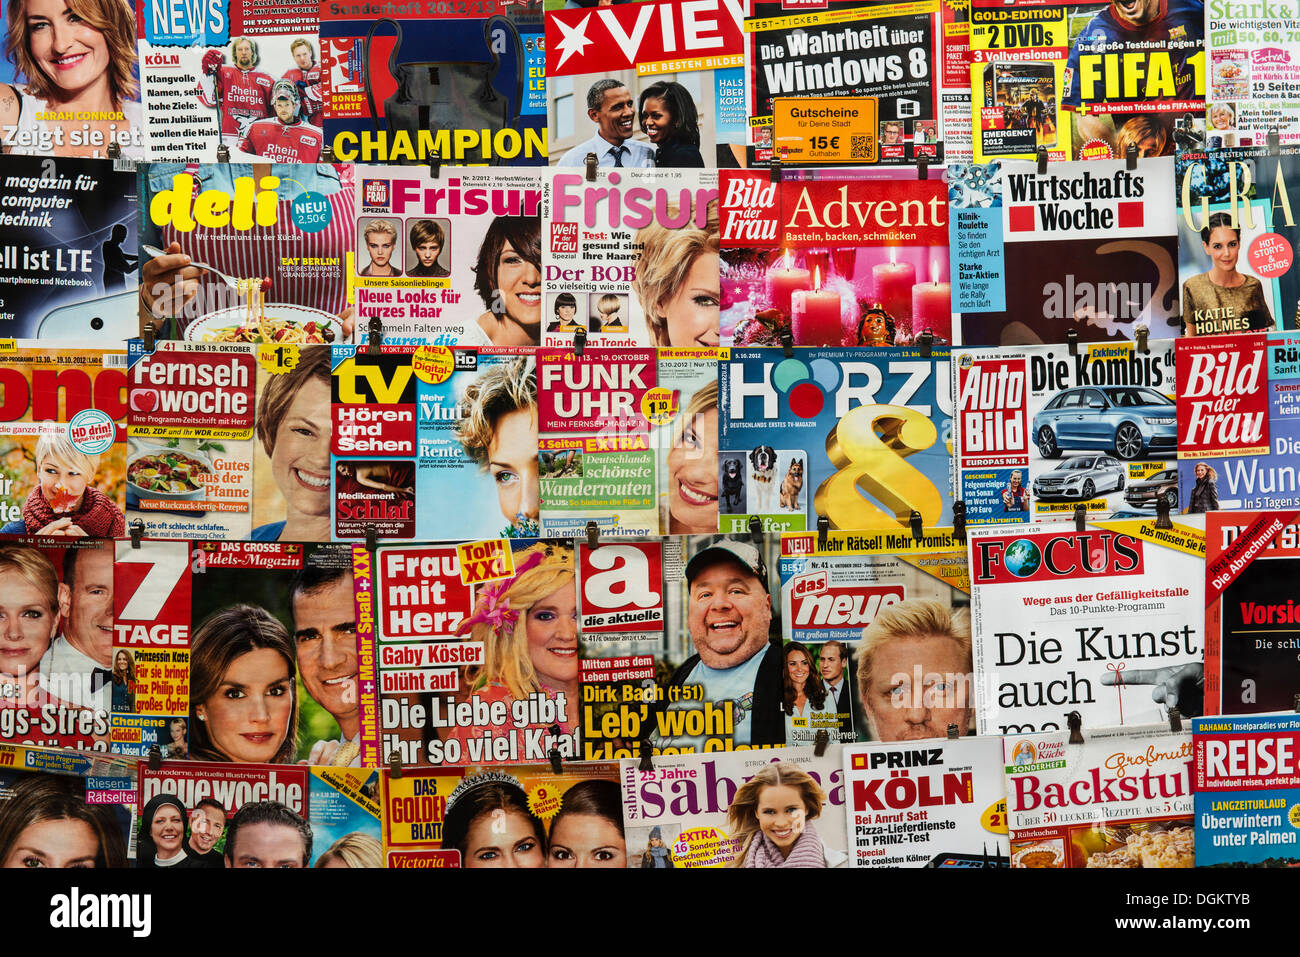 deutsche zeitschriften stockfoto bild 61902271 alamy. Black Bedroom Furniture Sets. Home Design Ideas